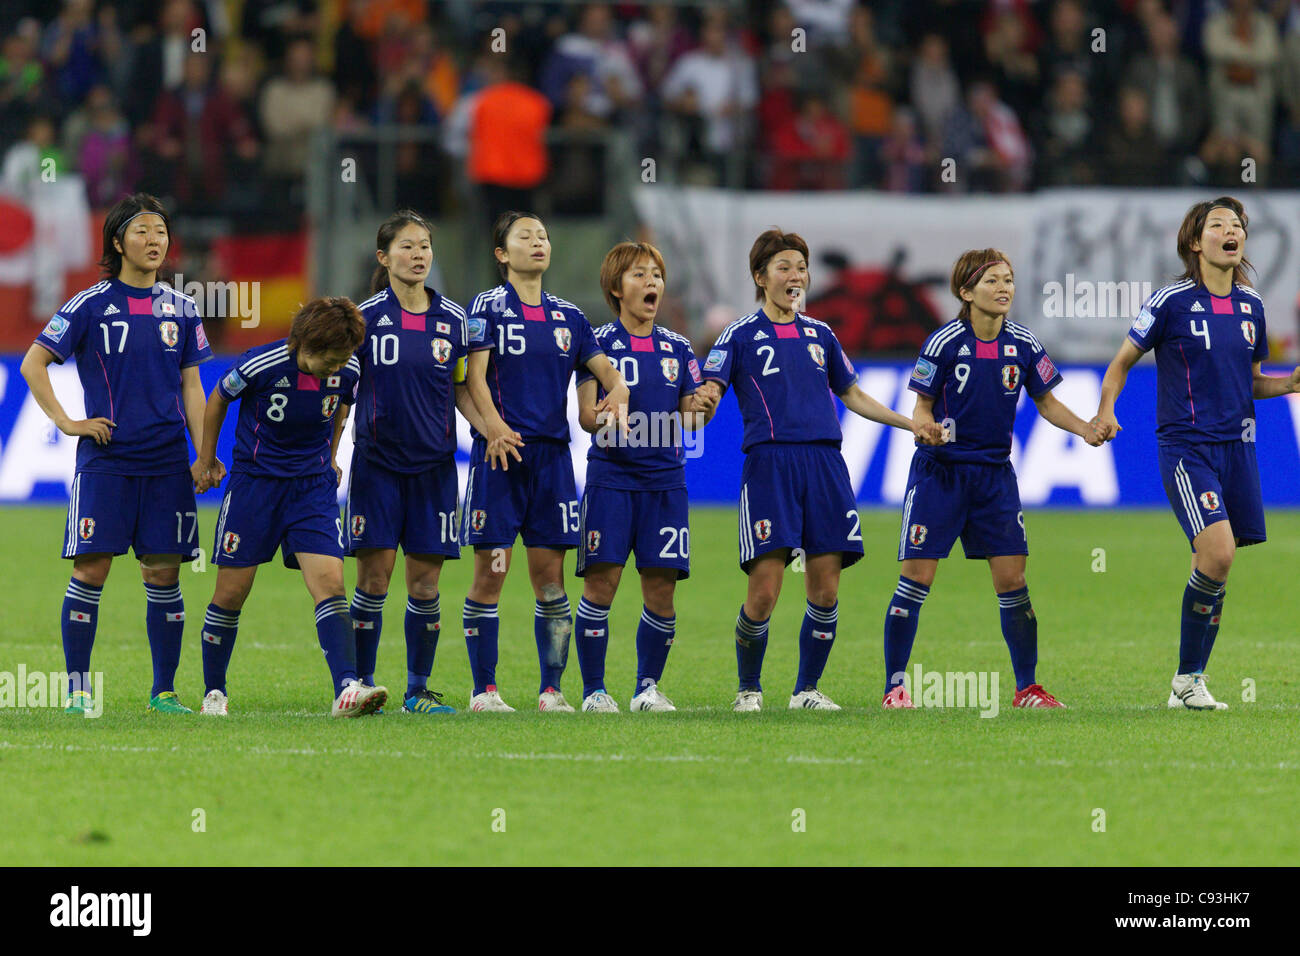 Japan players react to a teammate's score in the penalty kick shootout of the 2011 Women's World Cup final - Stock Image